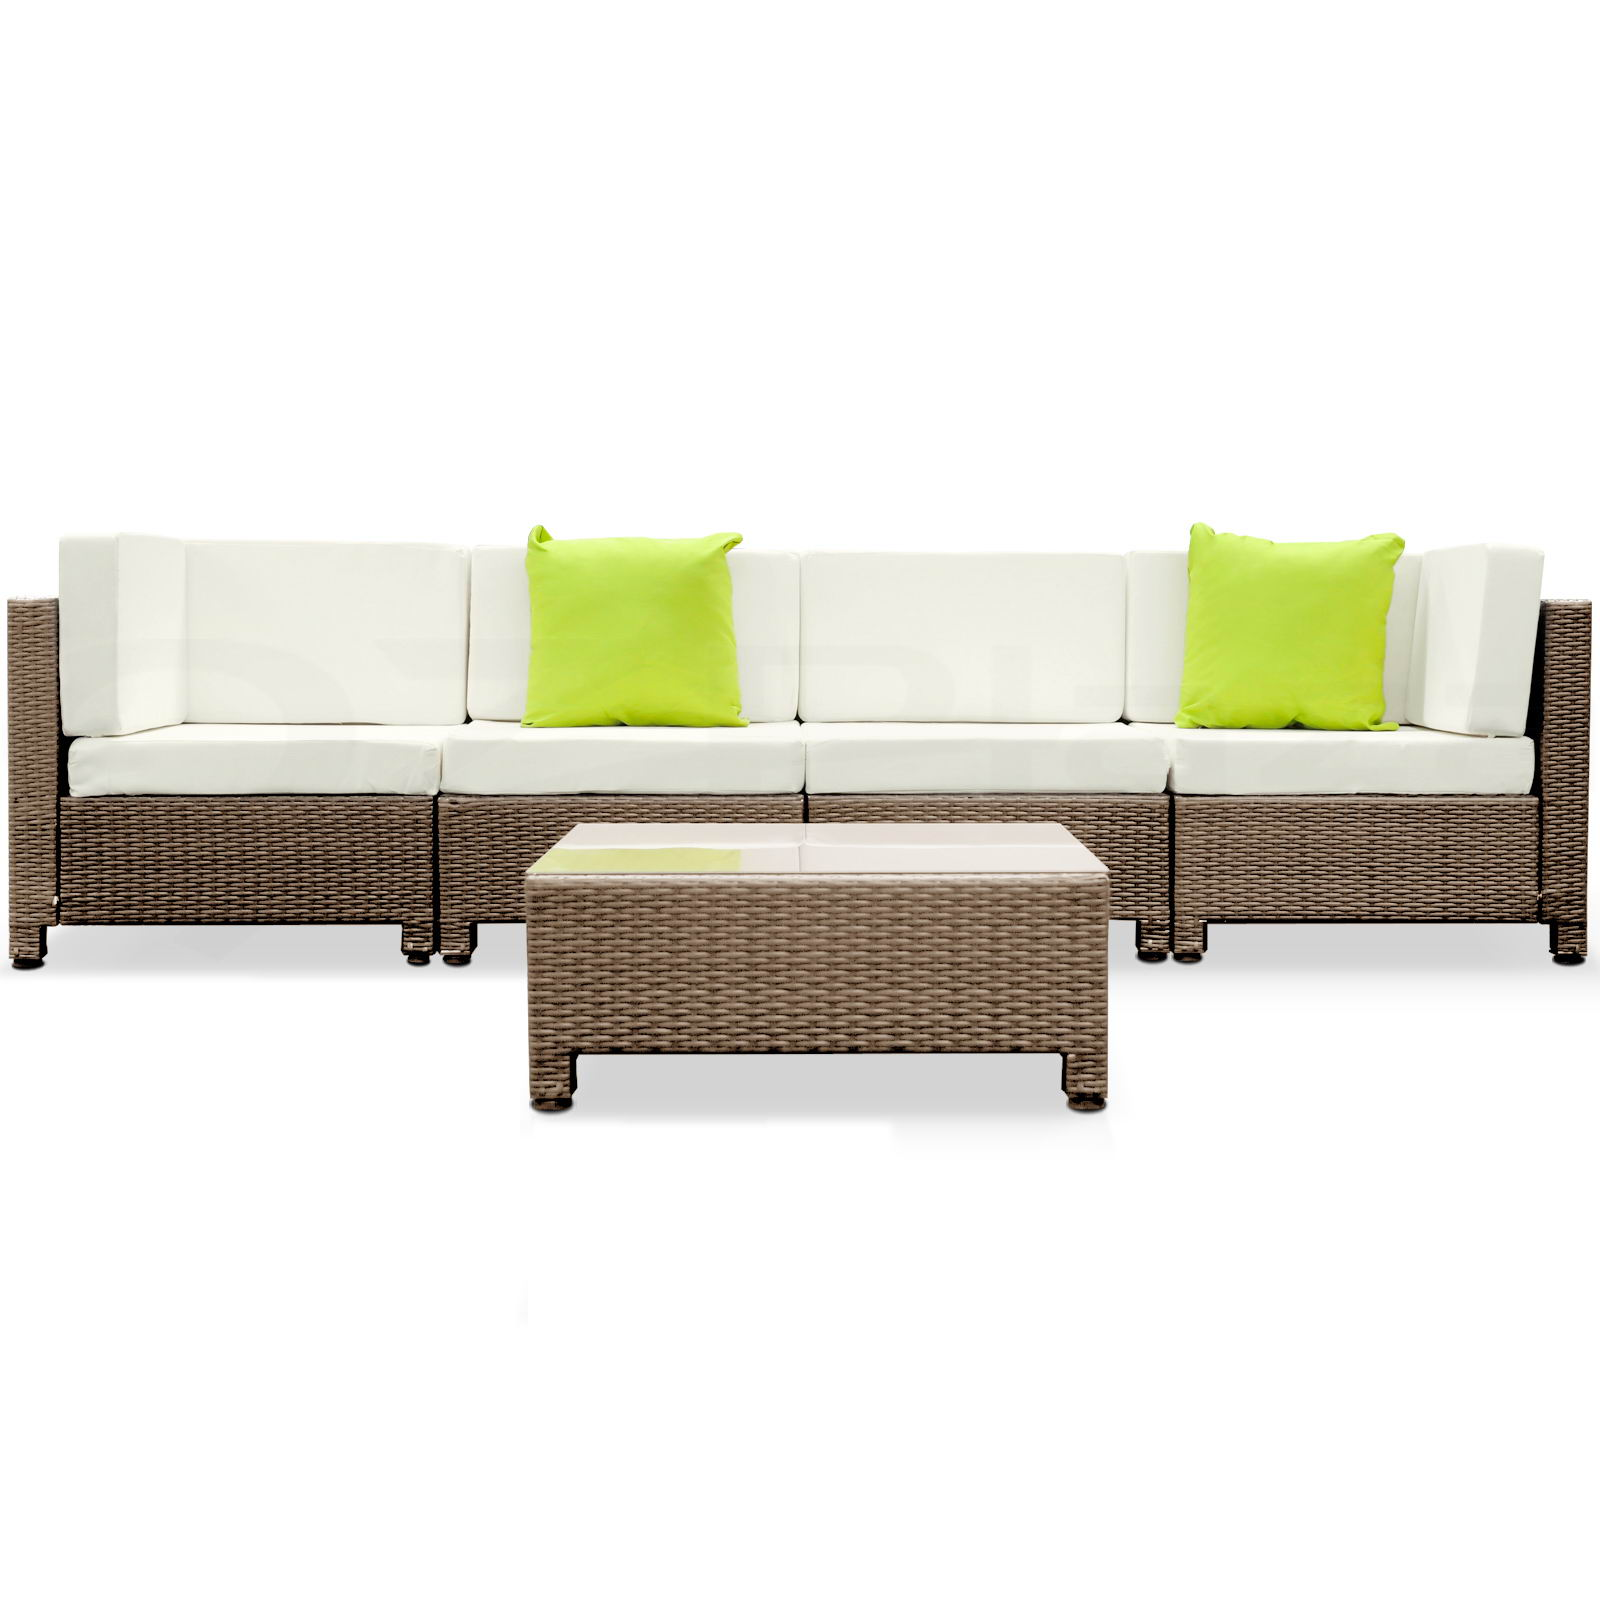 black brown outdoor furniture wicker pe rattan set garden lounge sofa bali ebay. Black Bedroom Furniture Sets. Home Design Ideas